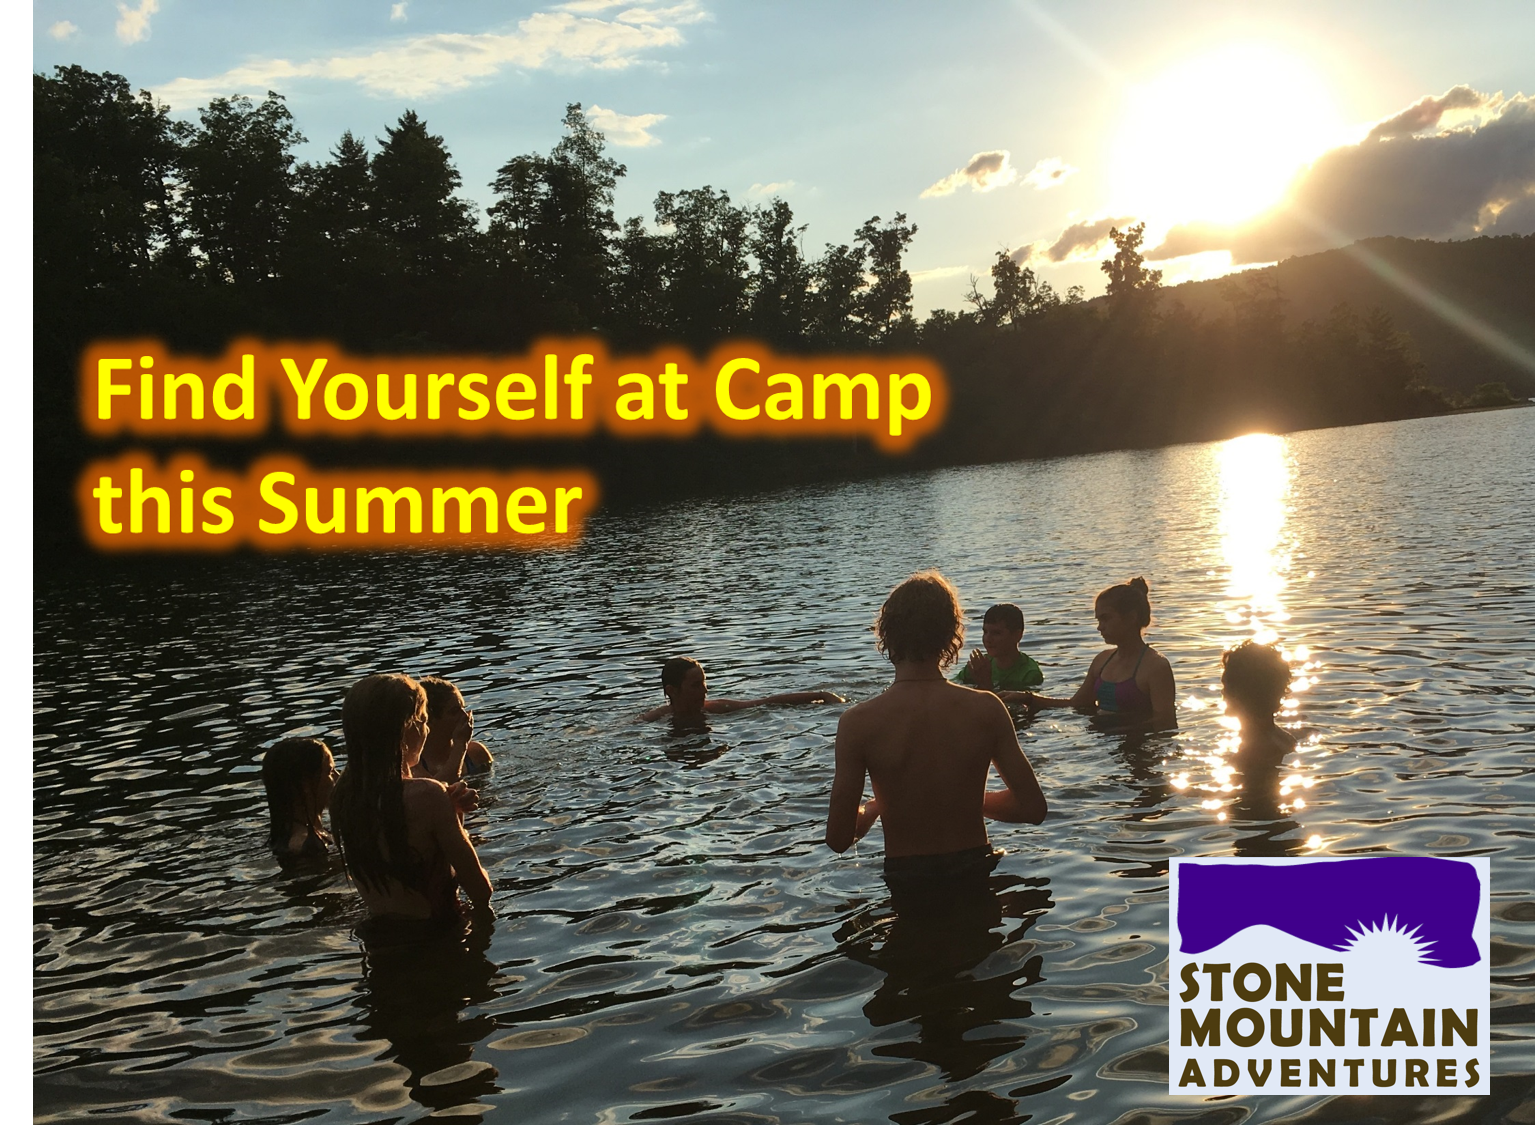 Find Yourseld at Camp THis summer 3-2